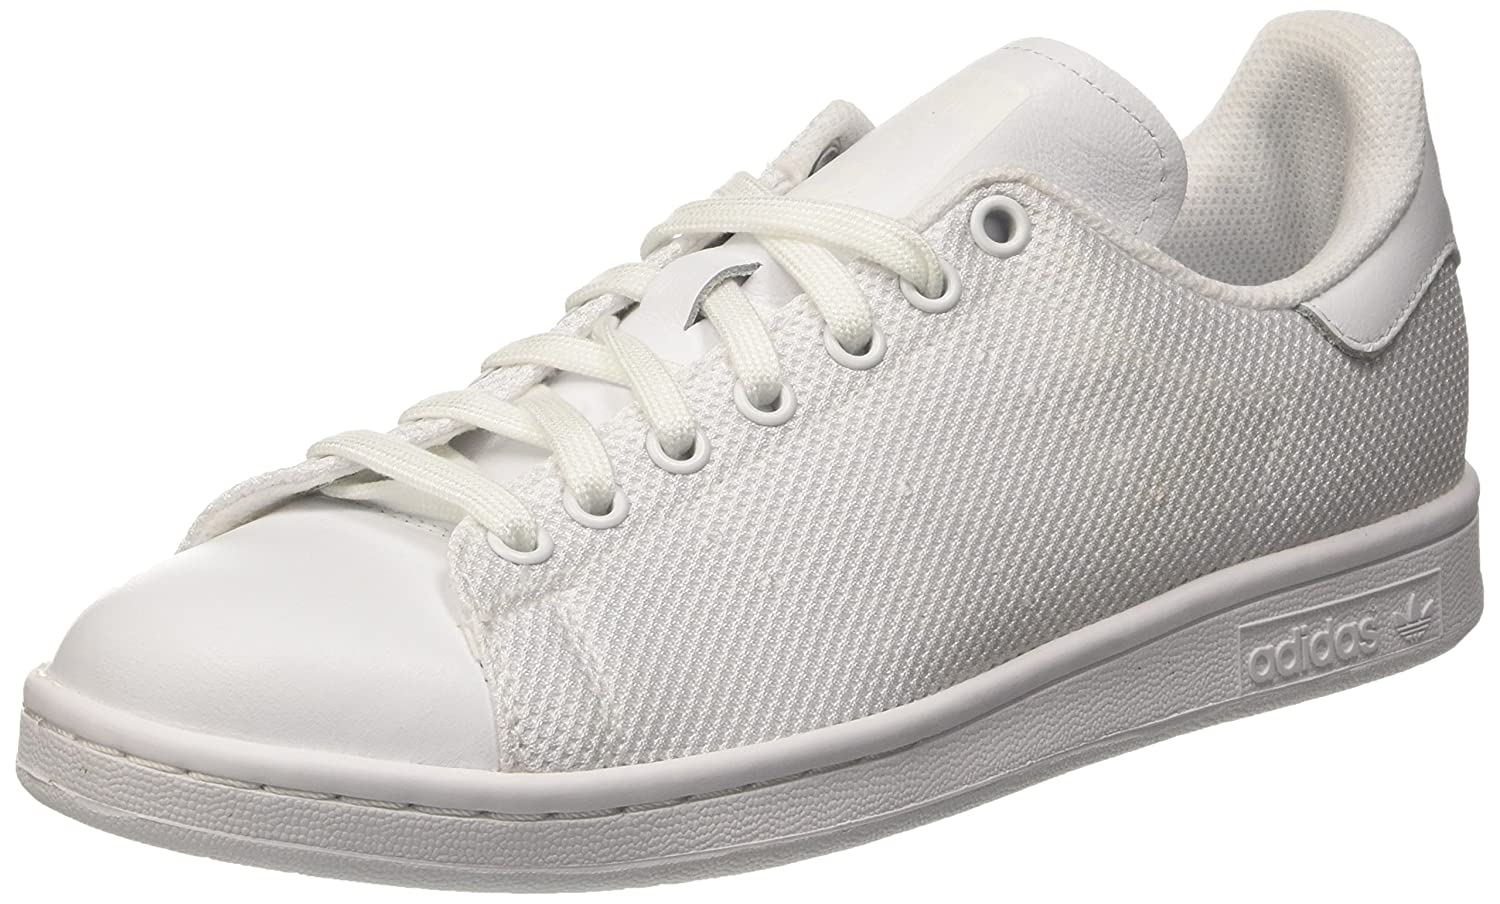 Blanc (Ftwr blanc Ftwr blanc Ftwr blanc) 42 EU adidas Stan Smith, paniers Basses Homme